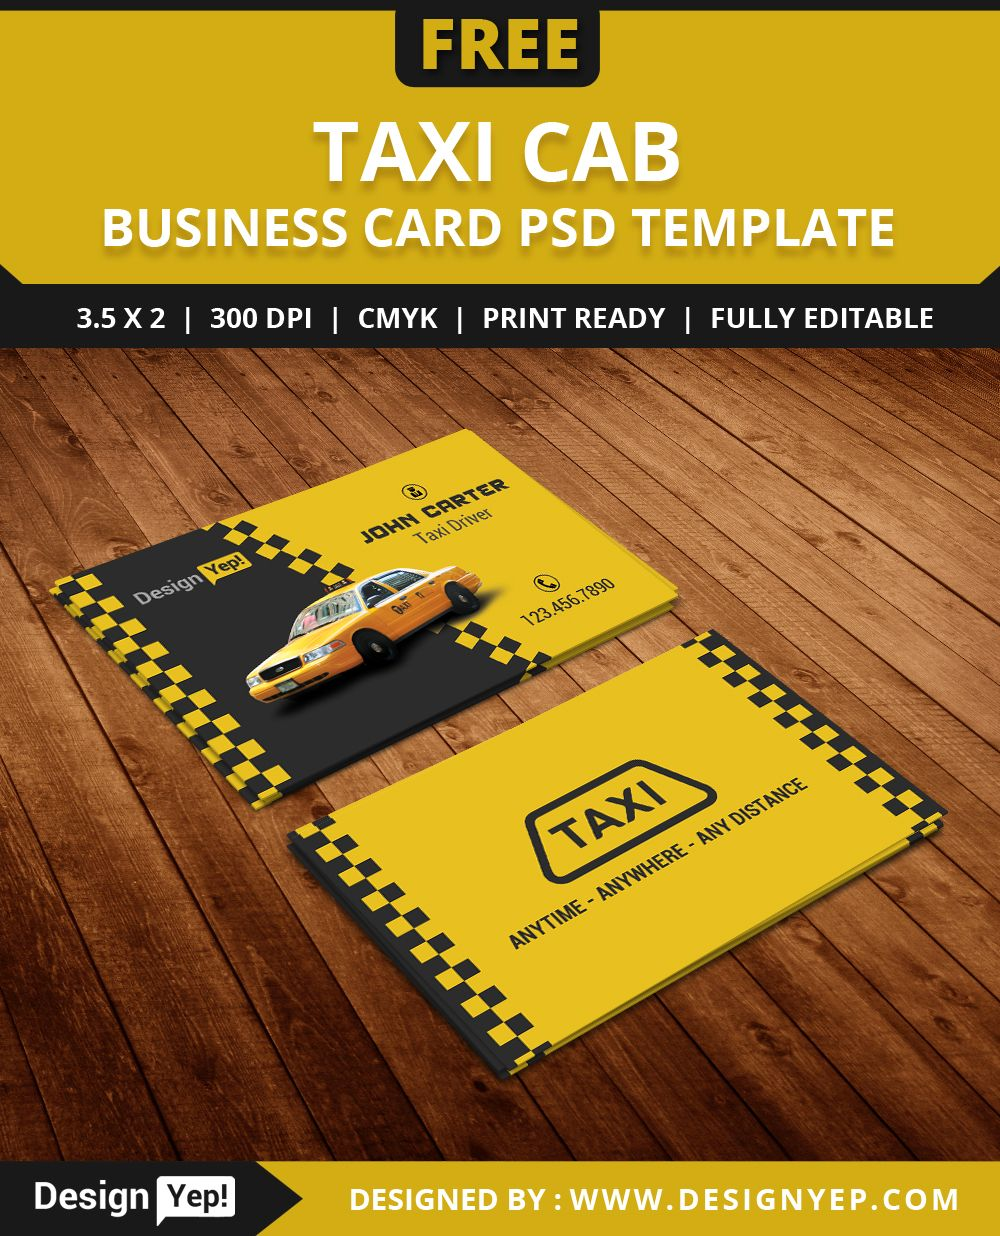 Free taxi cab business card template psd free business card free taxi cab business card template psd wajeb Image collections